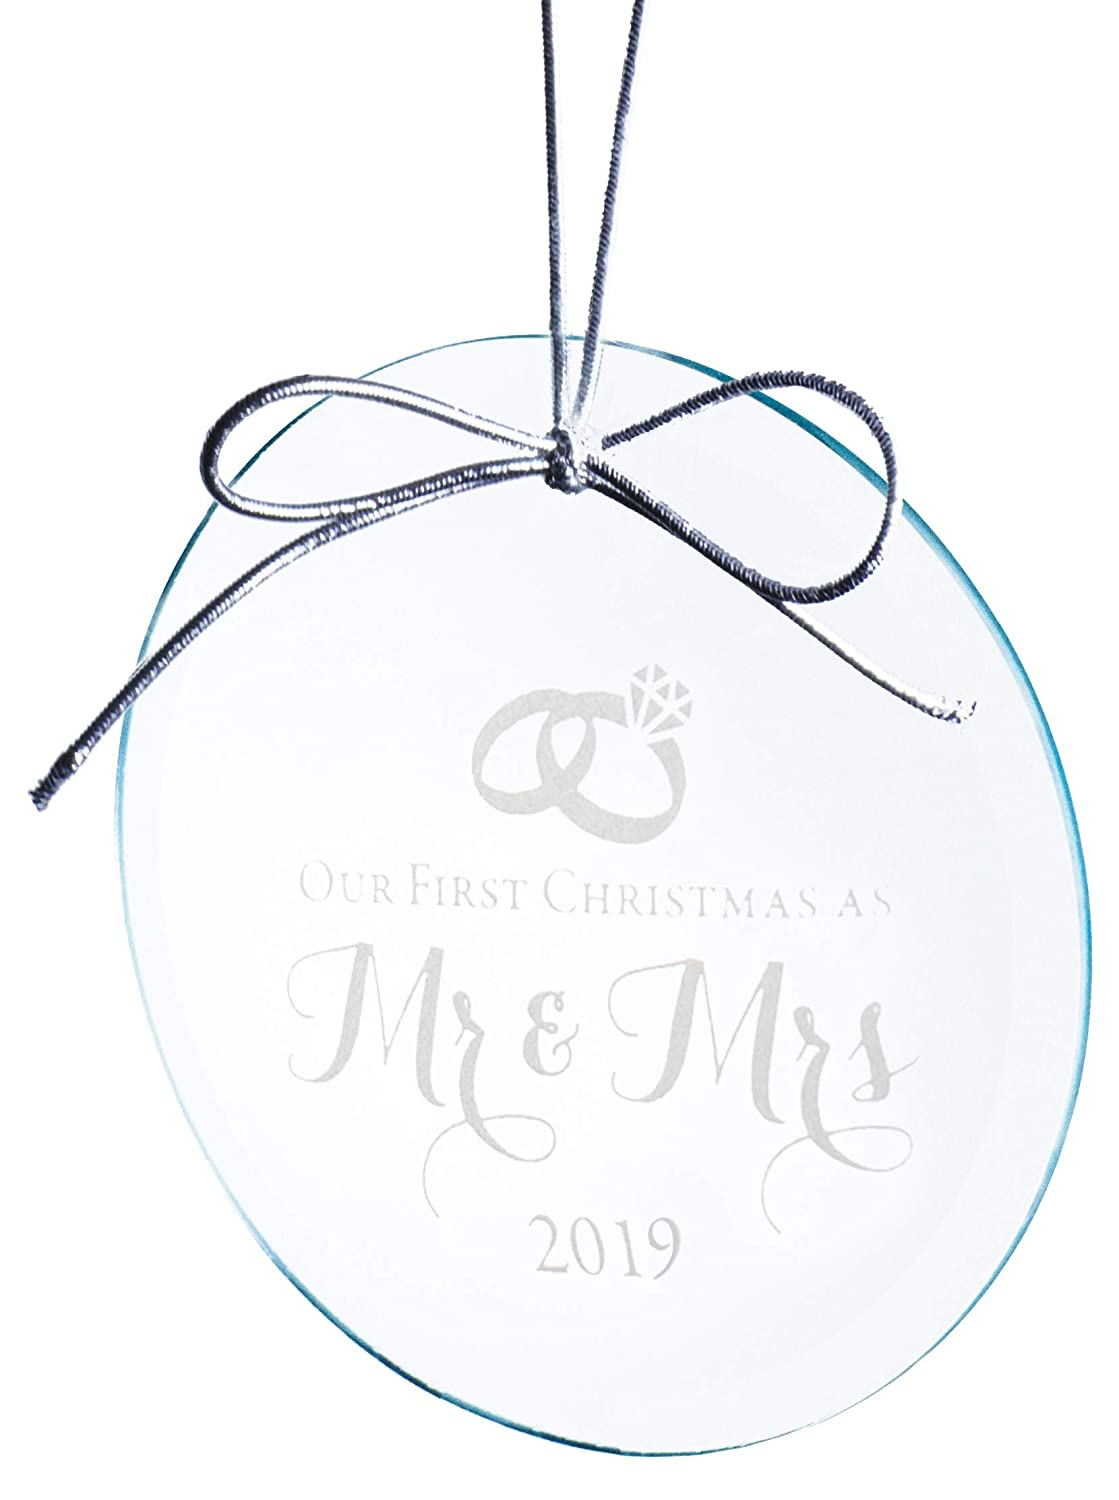 Our First Married Christmas Ornament 2019 Amazon.com: Mr and Mrs Wedding Ornament 2019   Elegant Design